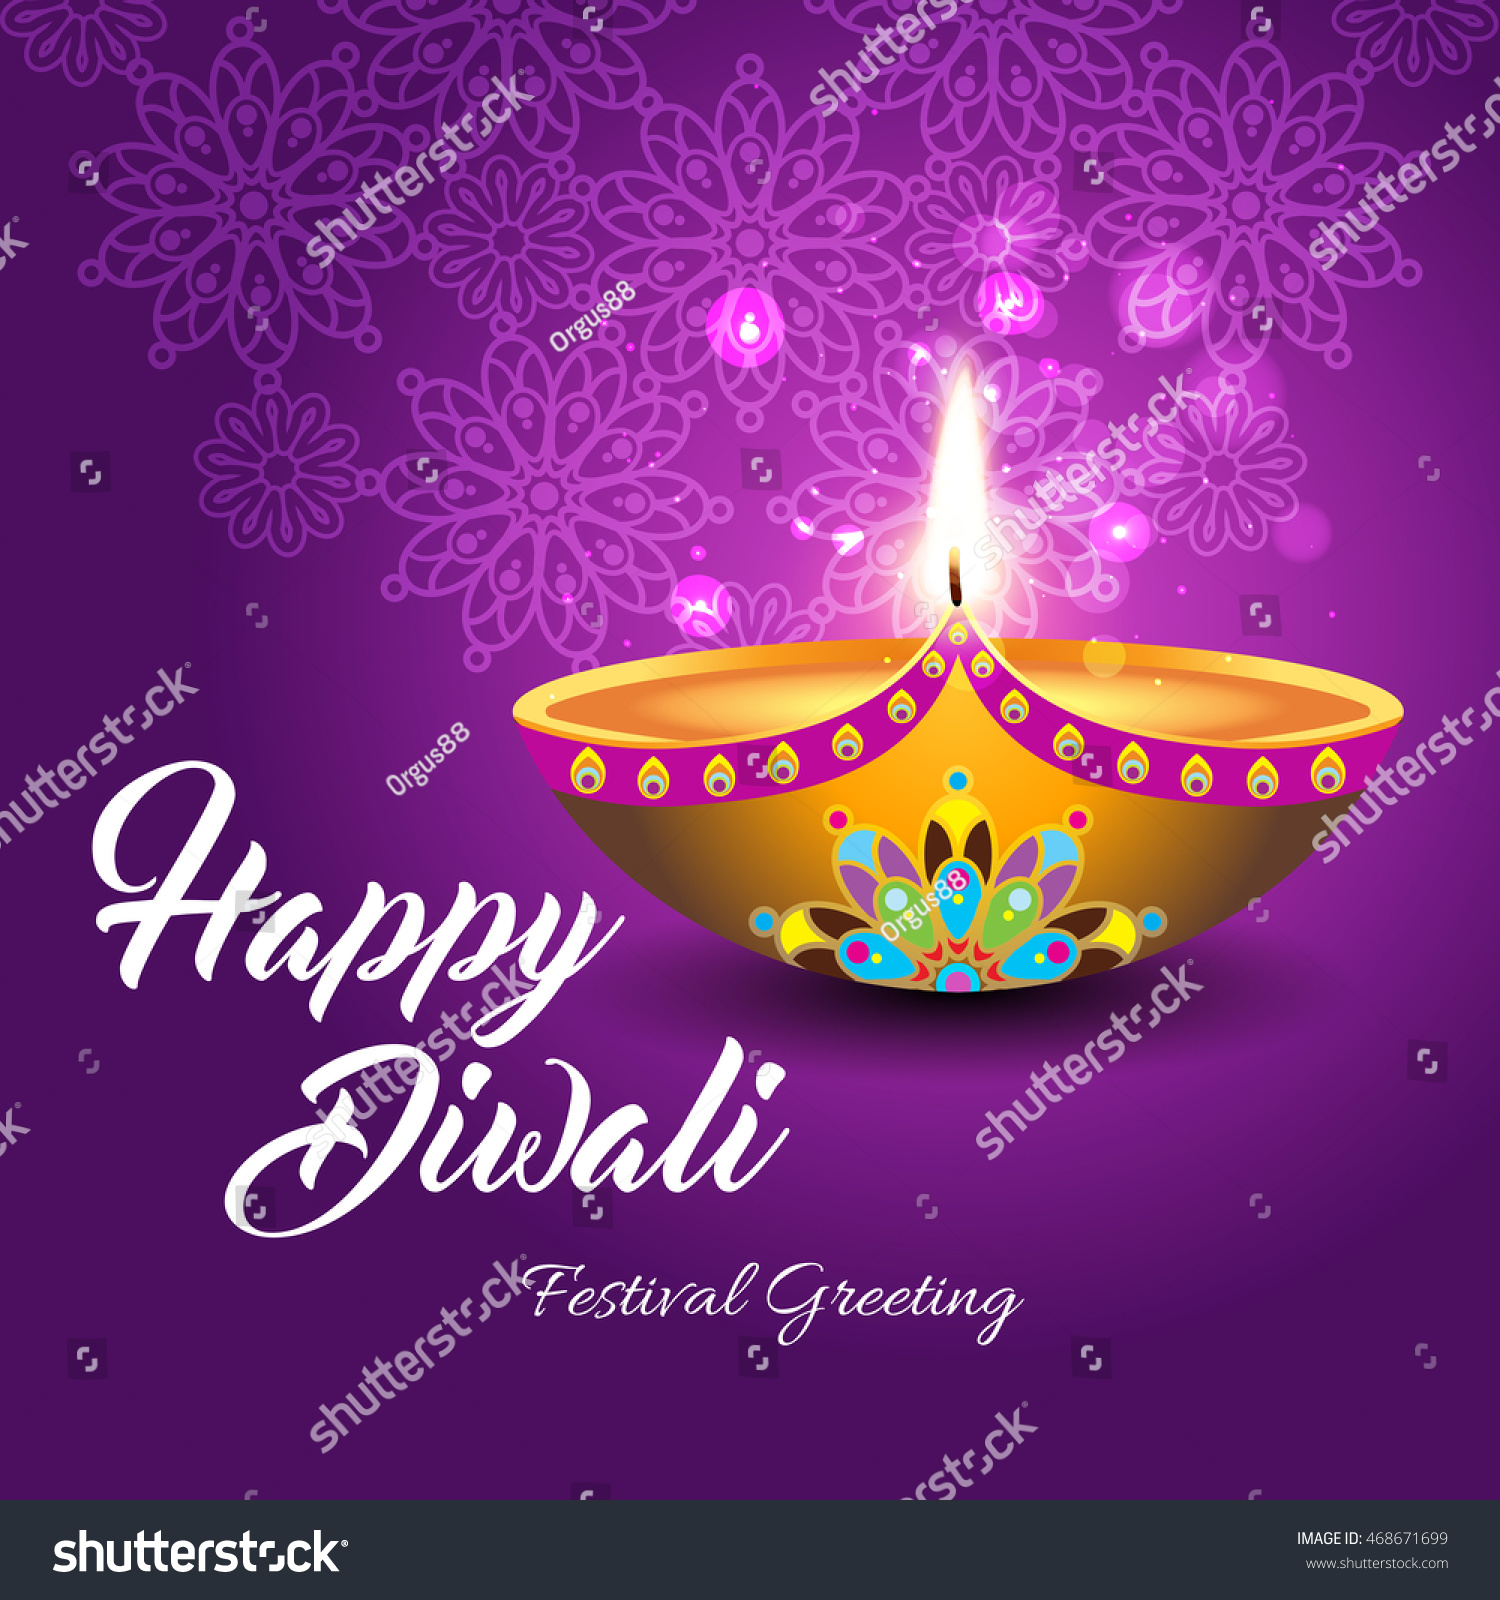 Beautiful greeting card for Hindu community festival Diwali Happy Diwali festival background illustration Diwali graphic design for Diwali festival celebration in India